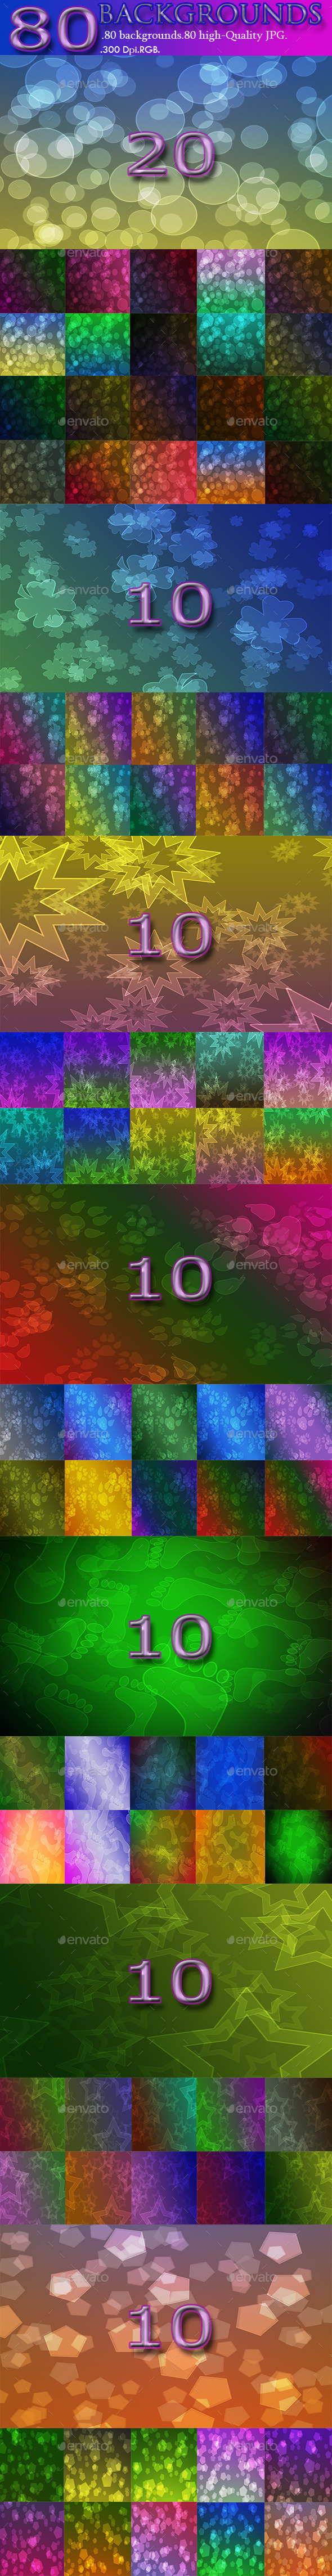 GraphicRiver 80 Backgrounds 9022529